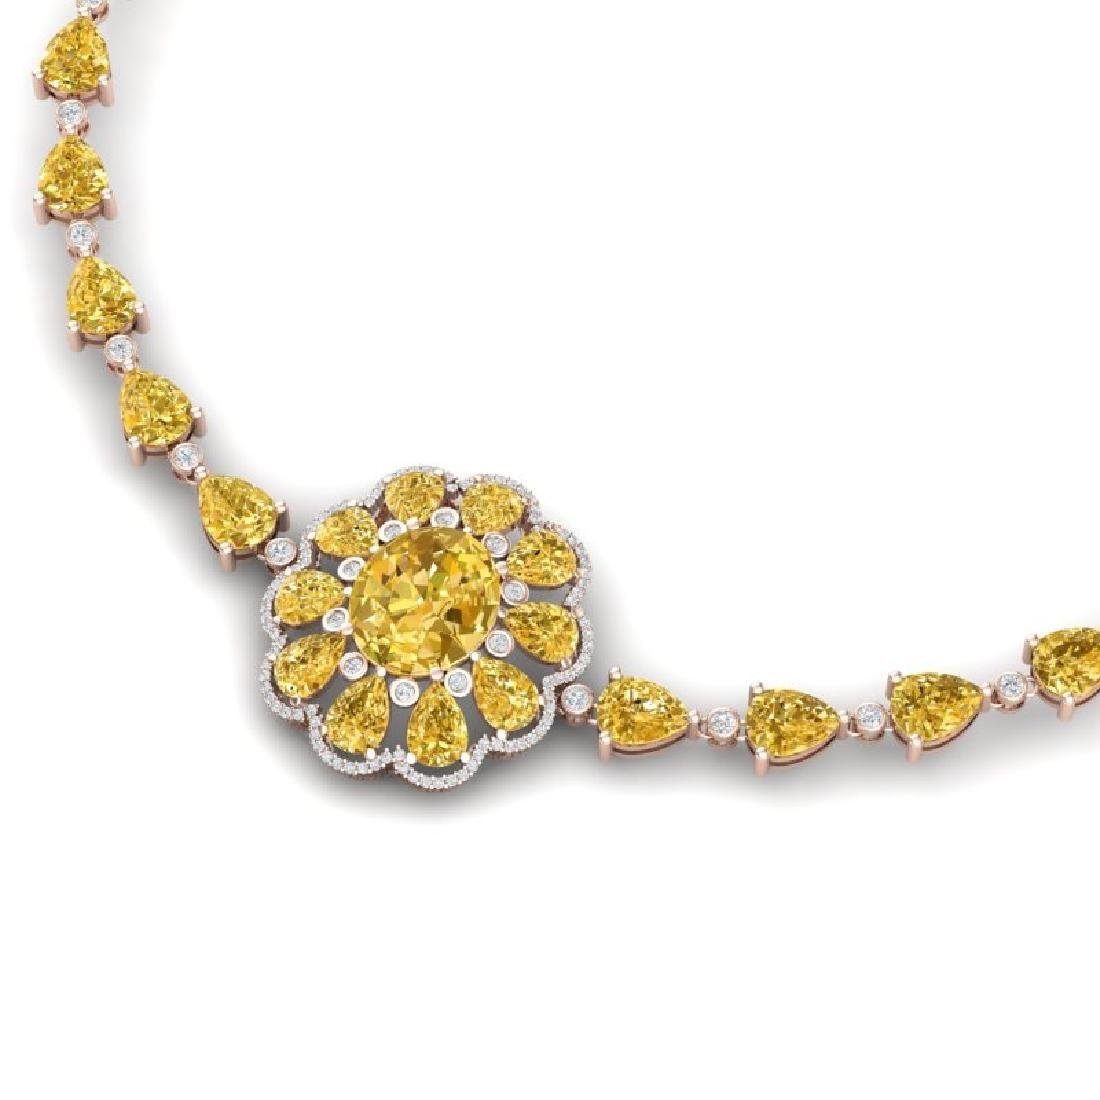 72.38 CTW Royalty Canary Citrine & VS Diamond Necklace